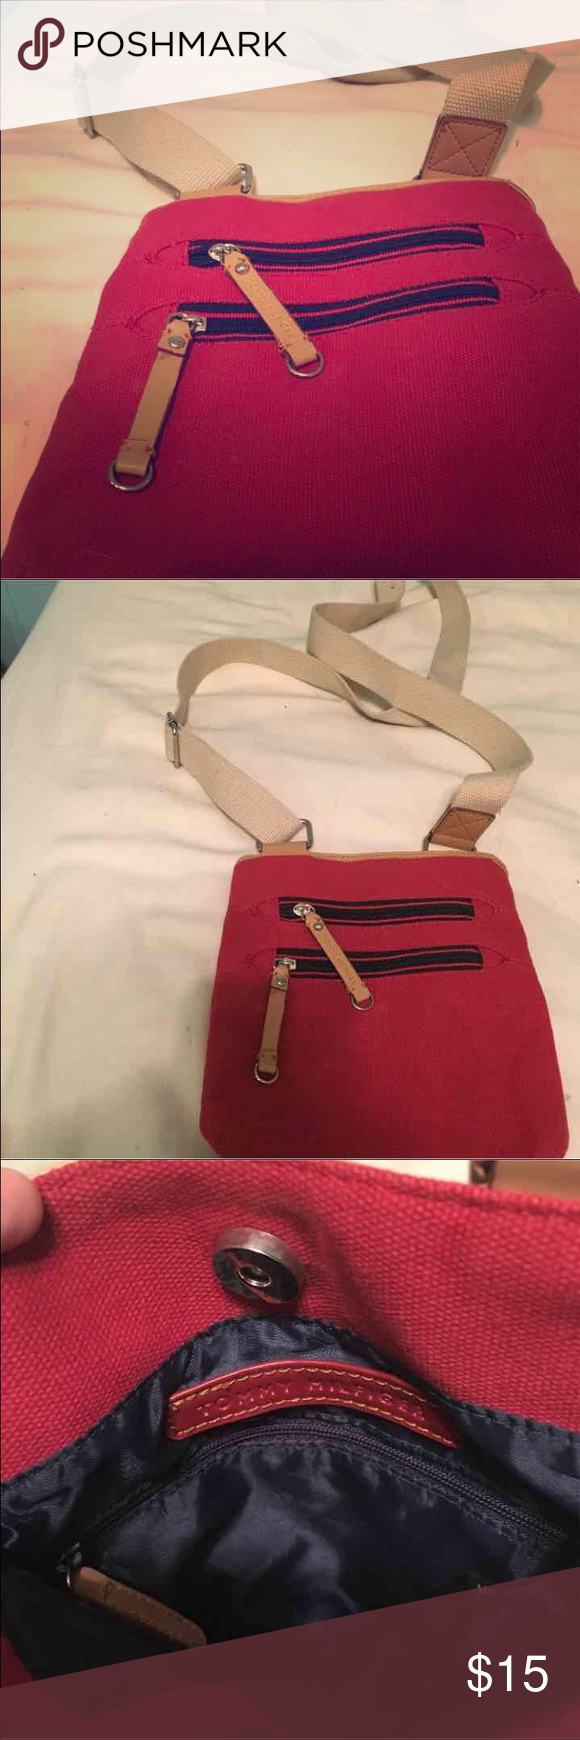 Tommy Hilfiger cross body bag Very great condition never used Tommy Hilfiger Bags Crossbody Bags